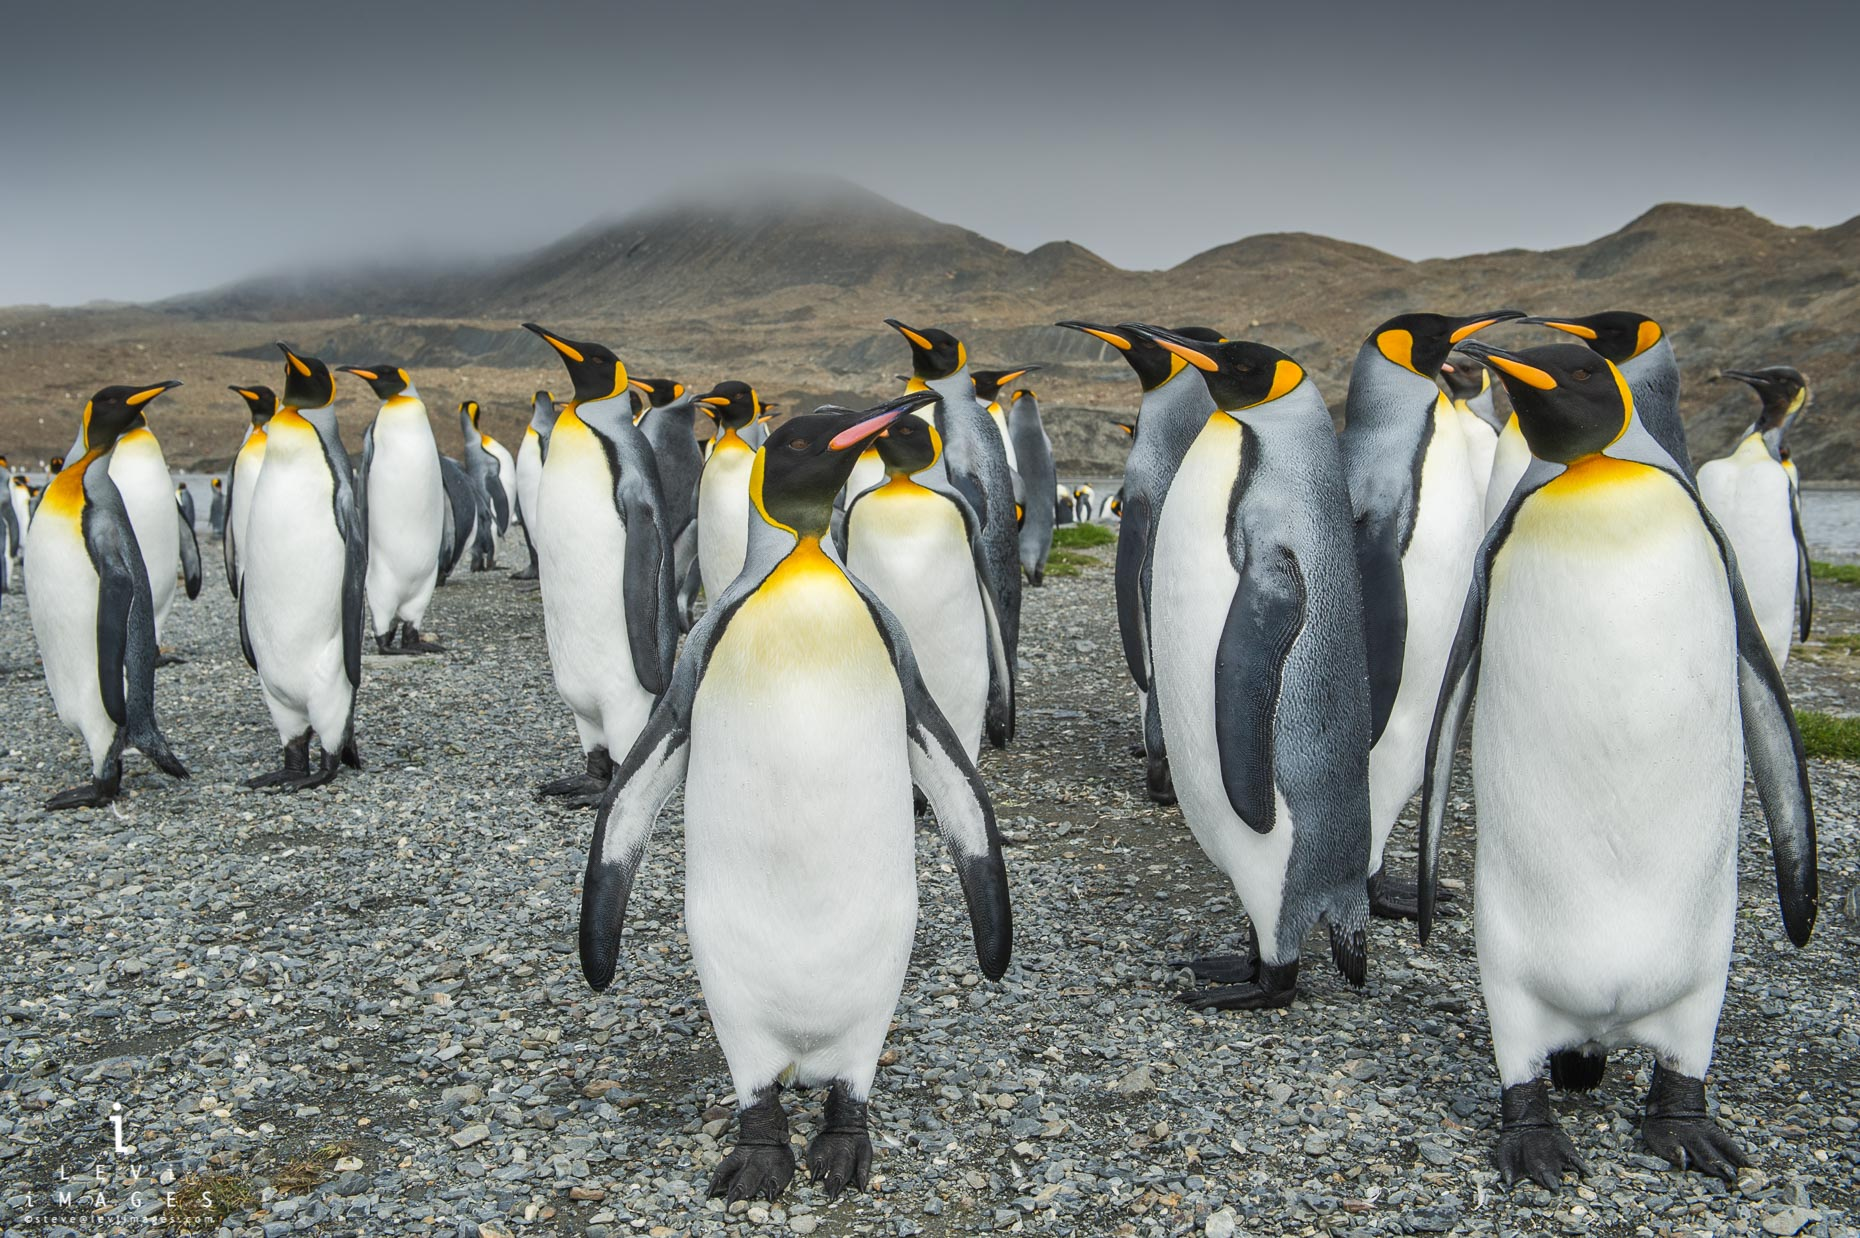 King penguins(Aptenodytes patagonicus). Saint Andrews Bay, South Georgia Island